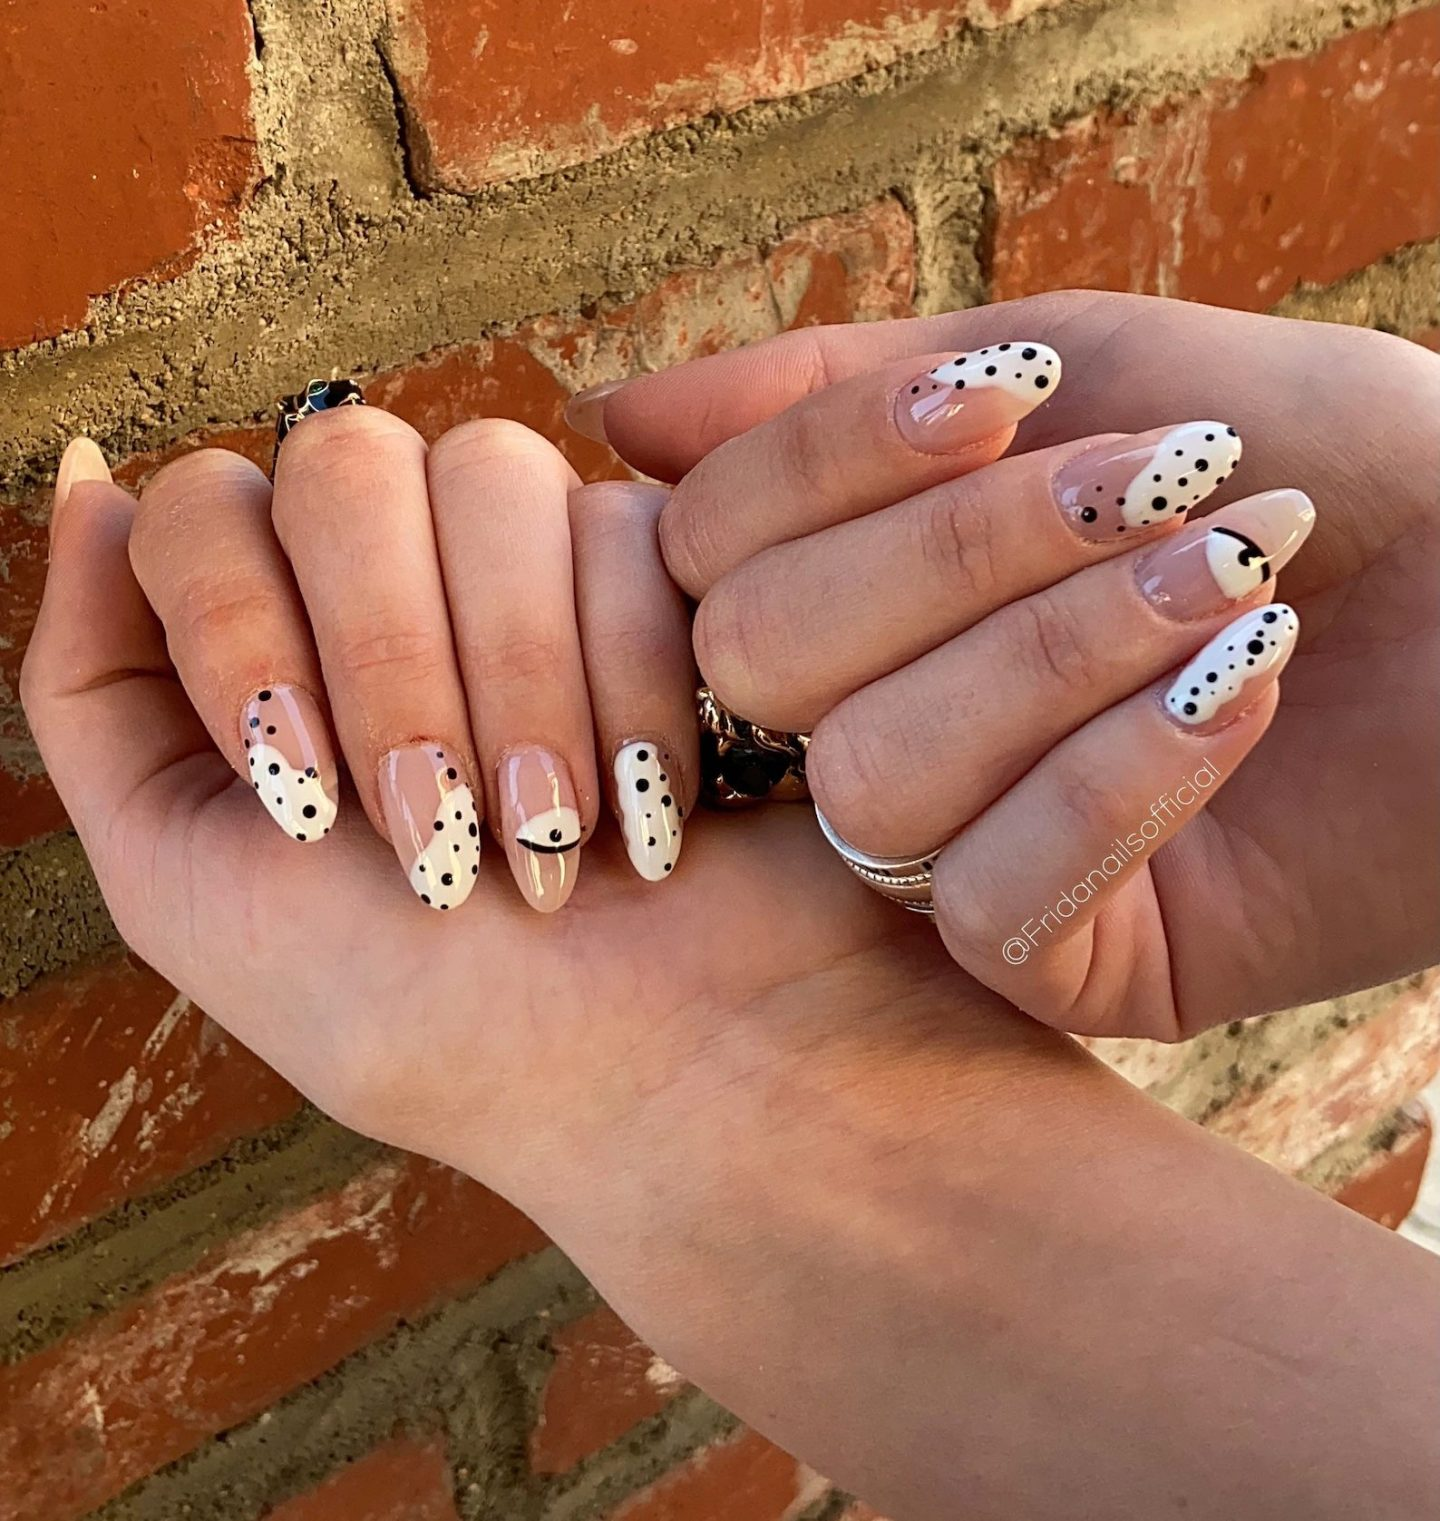 Cute abstract white nails with black polka dots